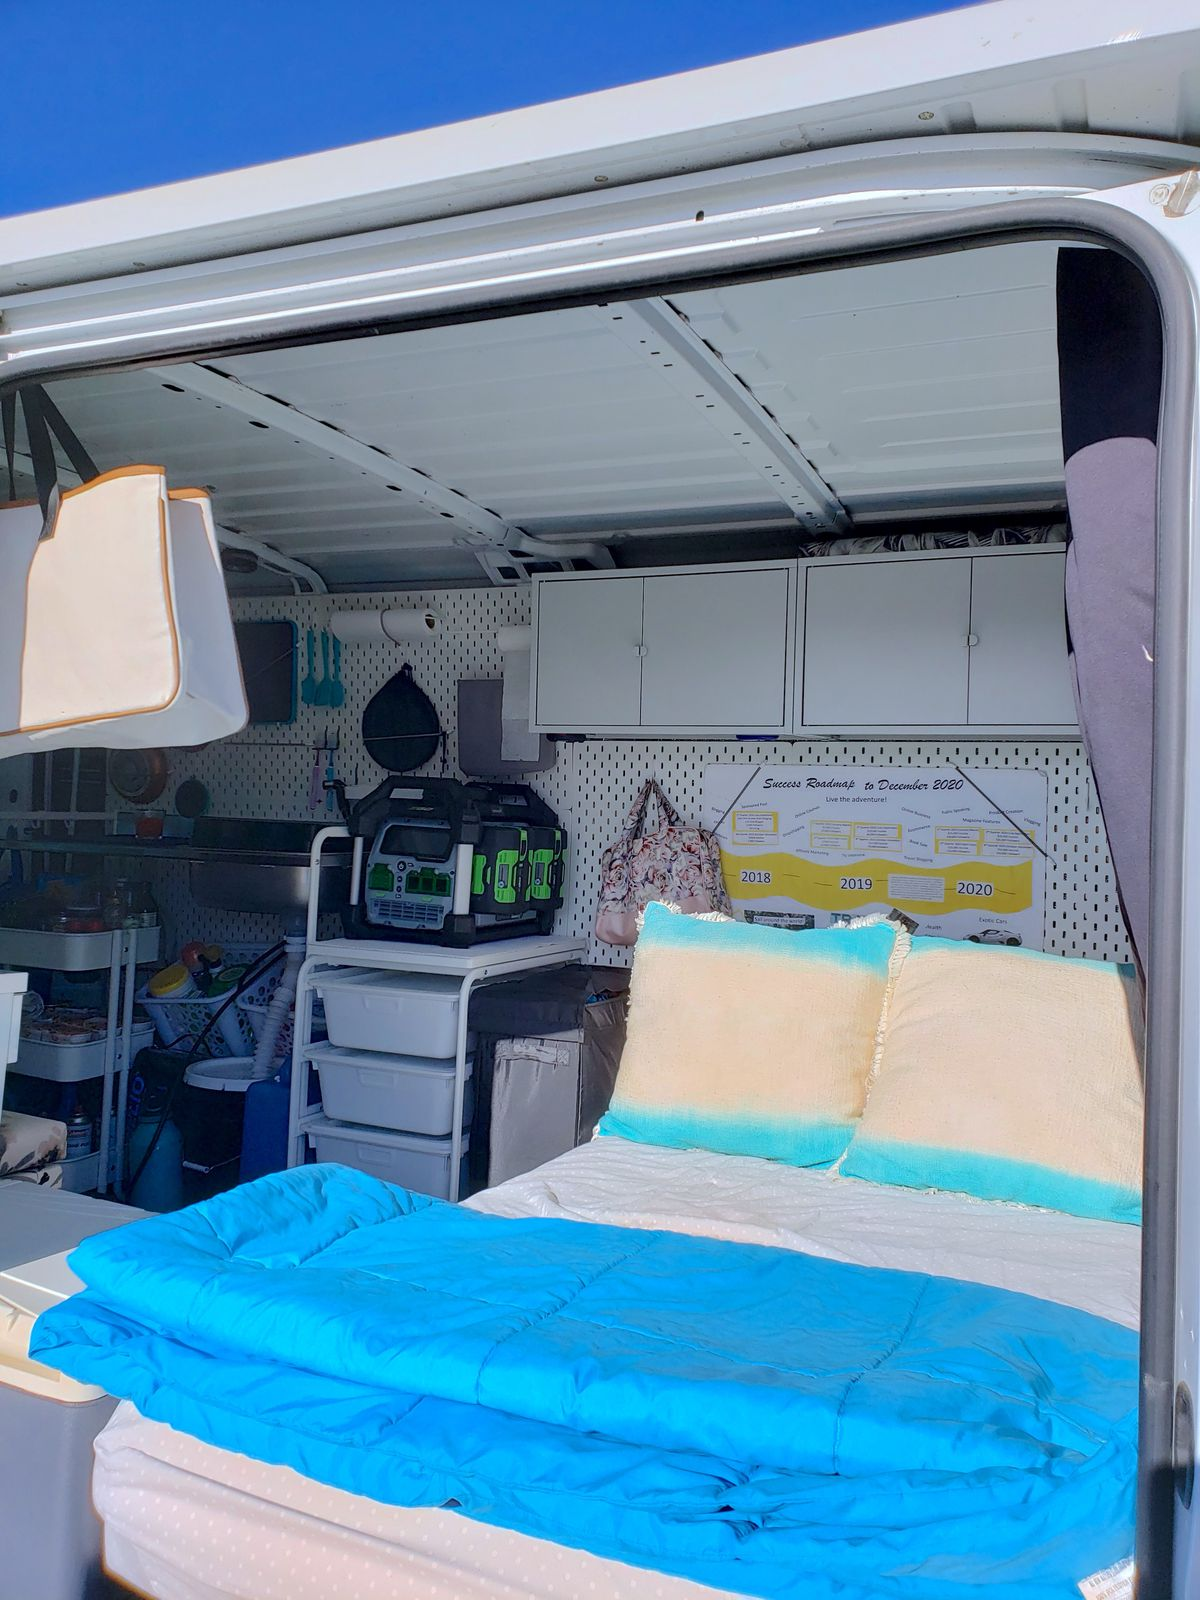 A bed in a white camper van features blue and white linens and a side door open.